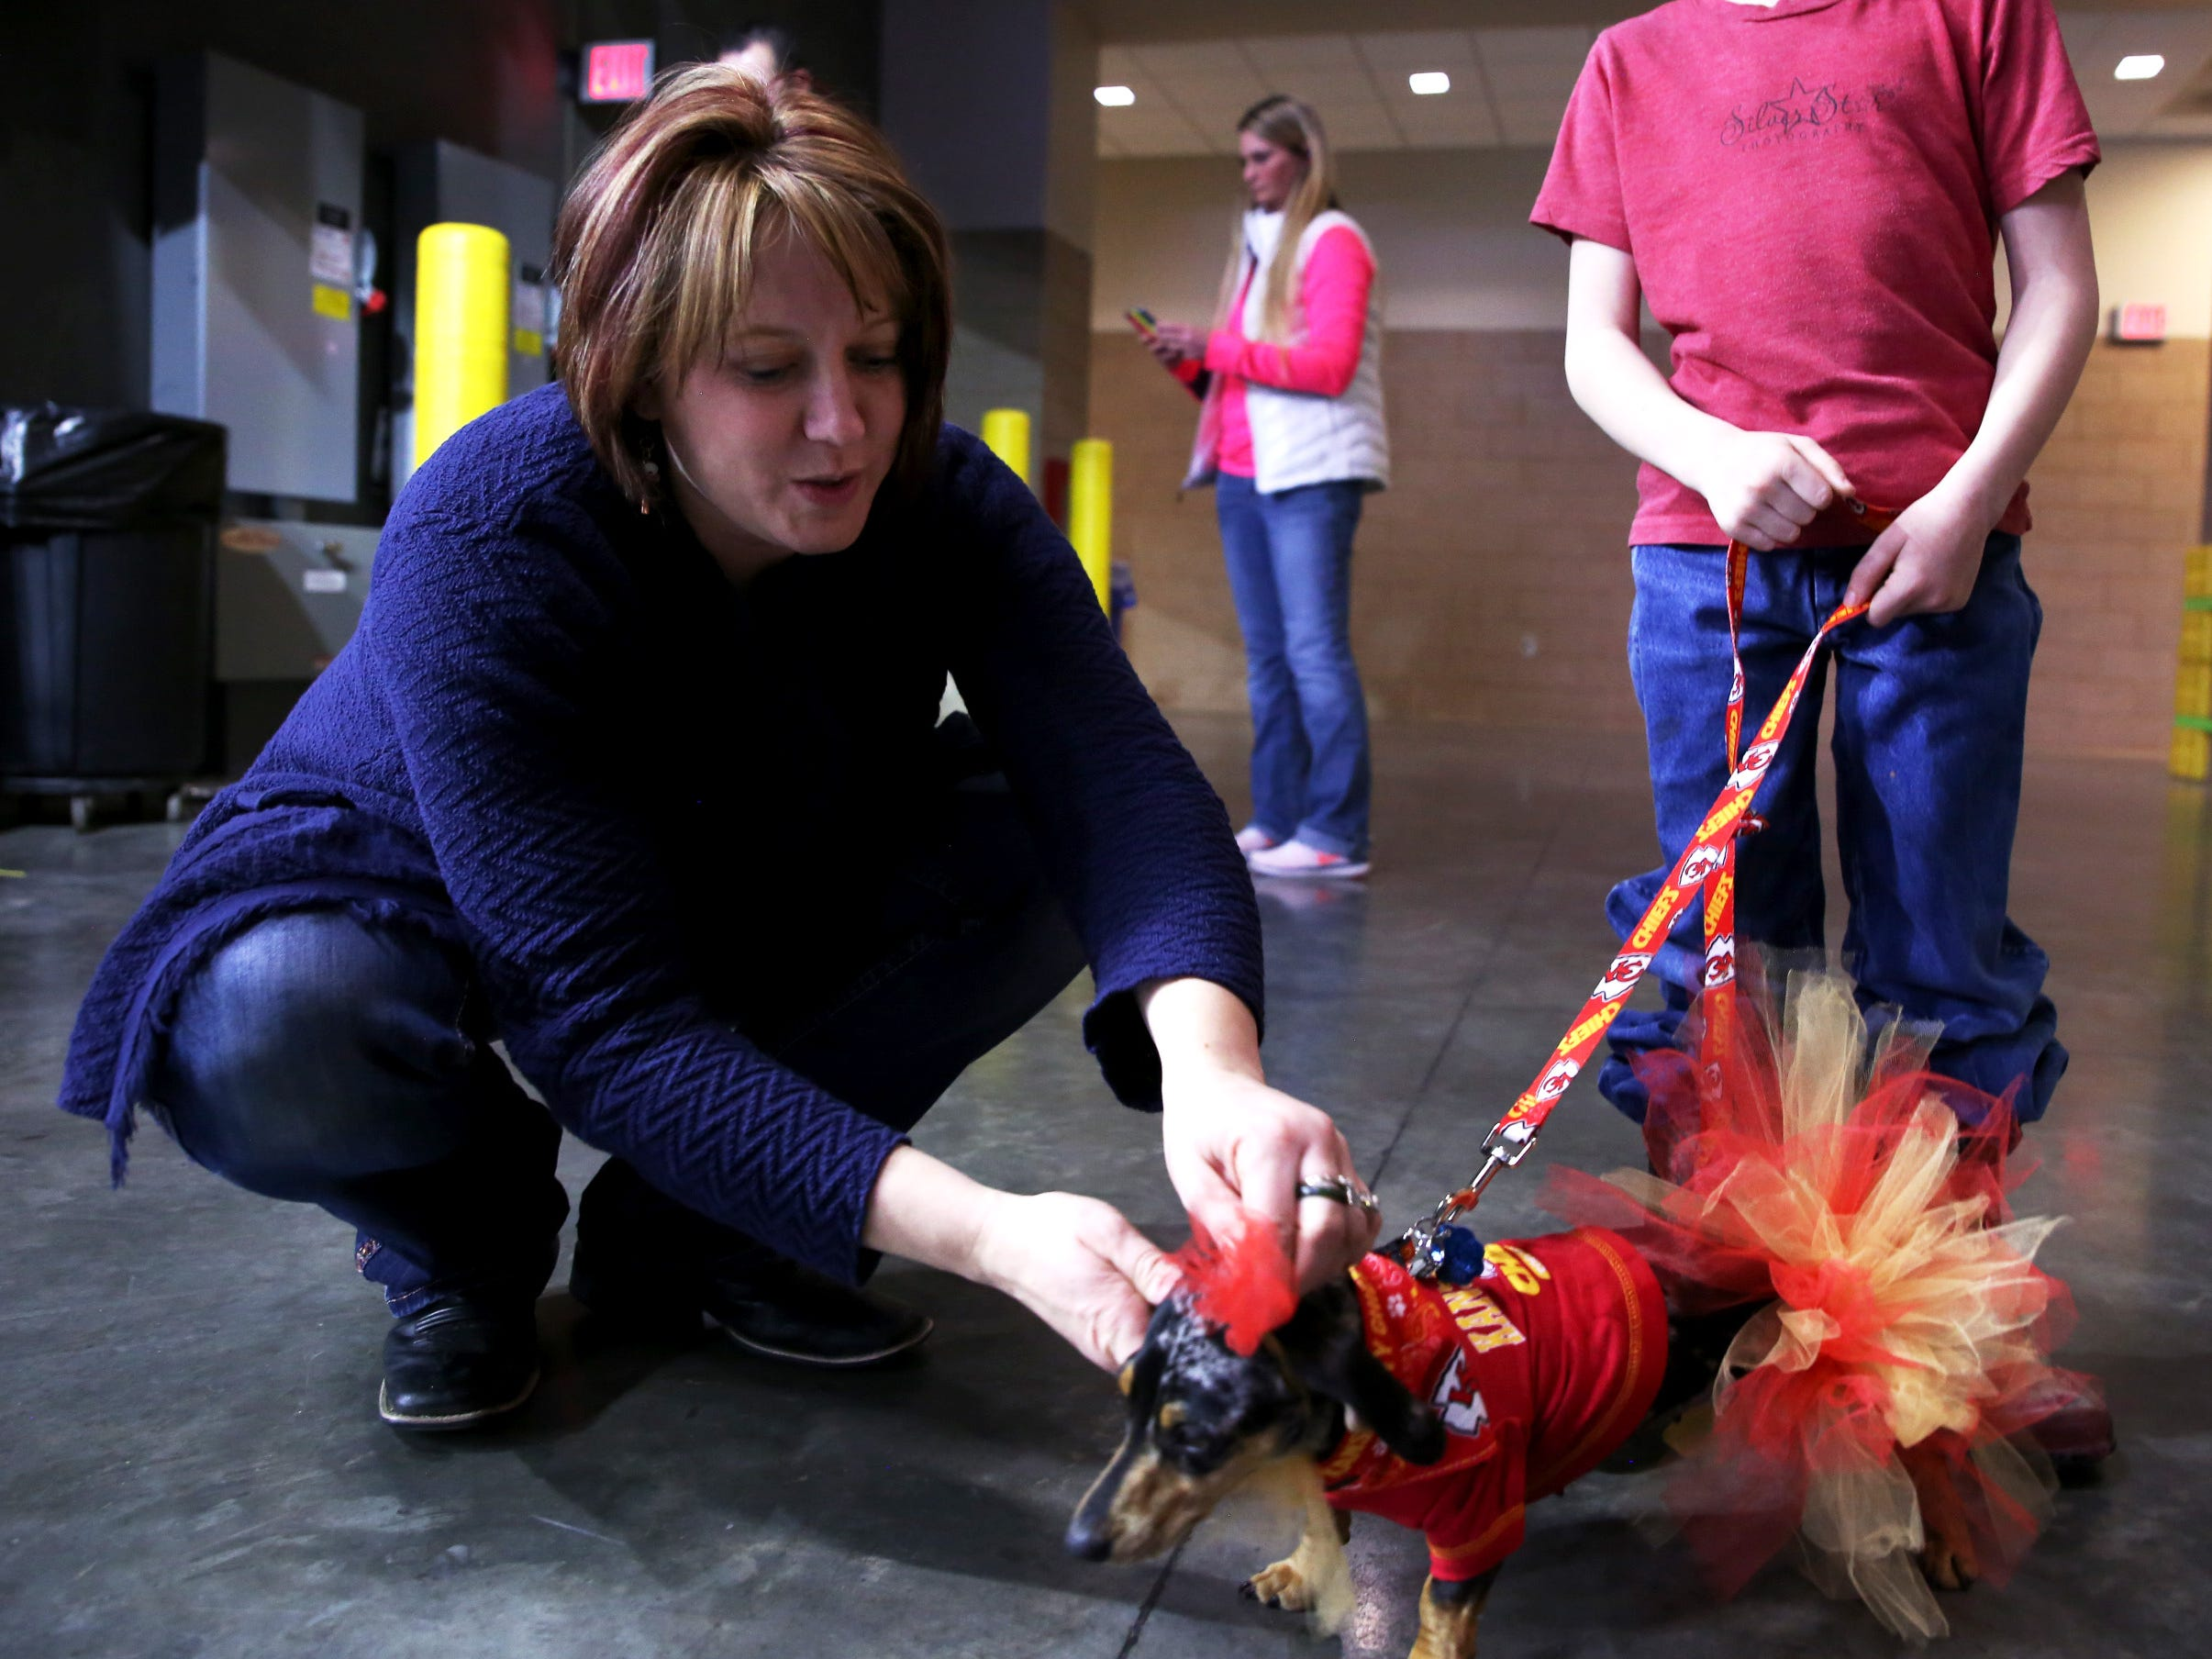 Amber Shane fixes her dog, Pepper's, collar during a Stampede game against the Omaha Lancers at the Denny Sanford Premier Center Feb. 23, 2019. Pepper was dressed in Kansas City Chiefs attire.